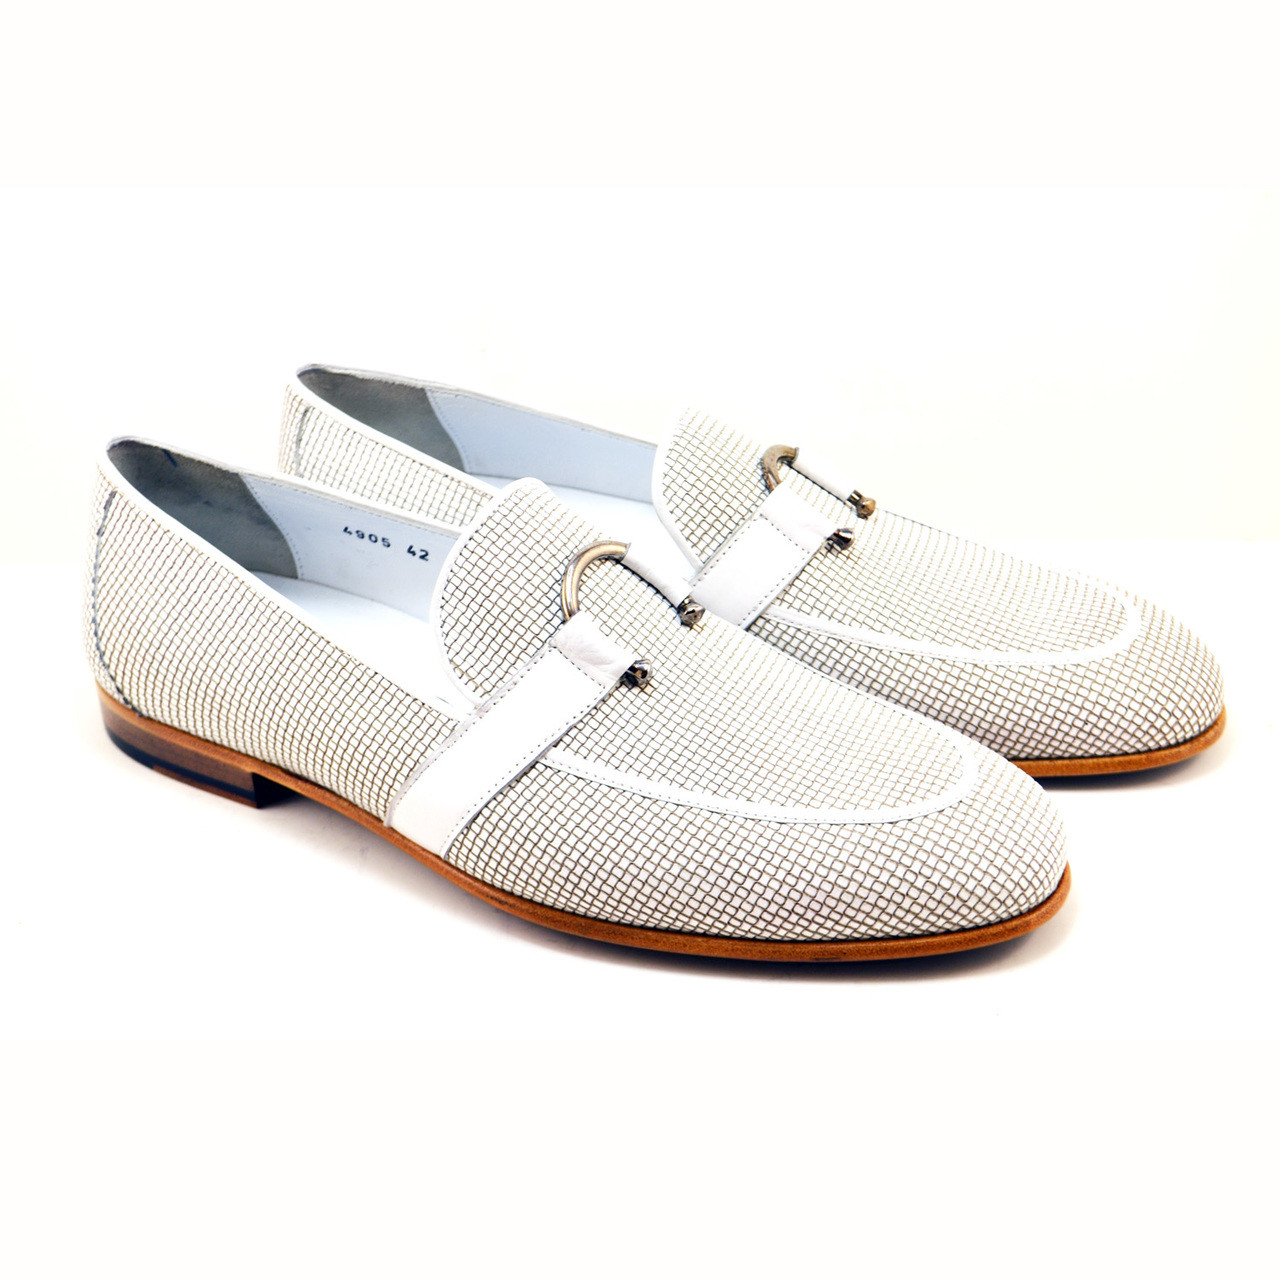 bc2a3a7d70ba4 Corrente 4905 Woven Loafer with horseshoe buckle- White